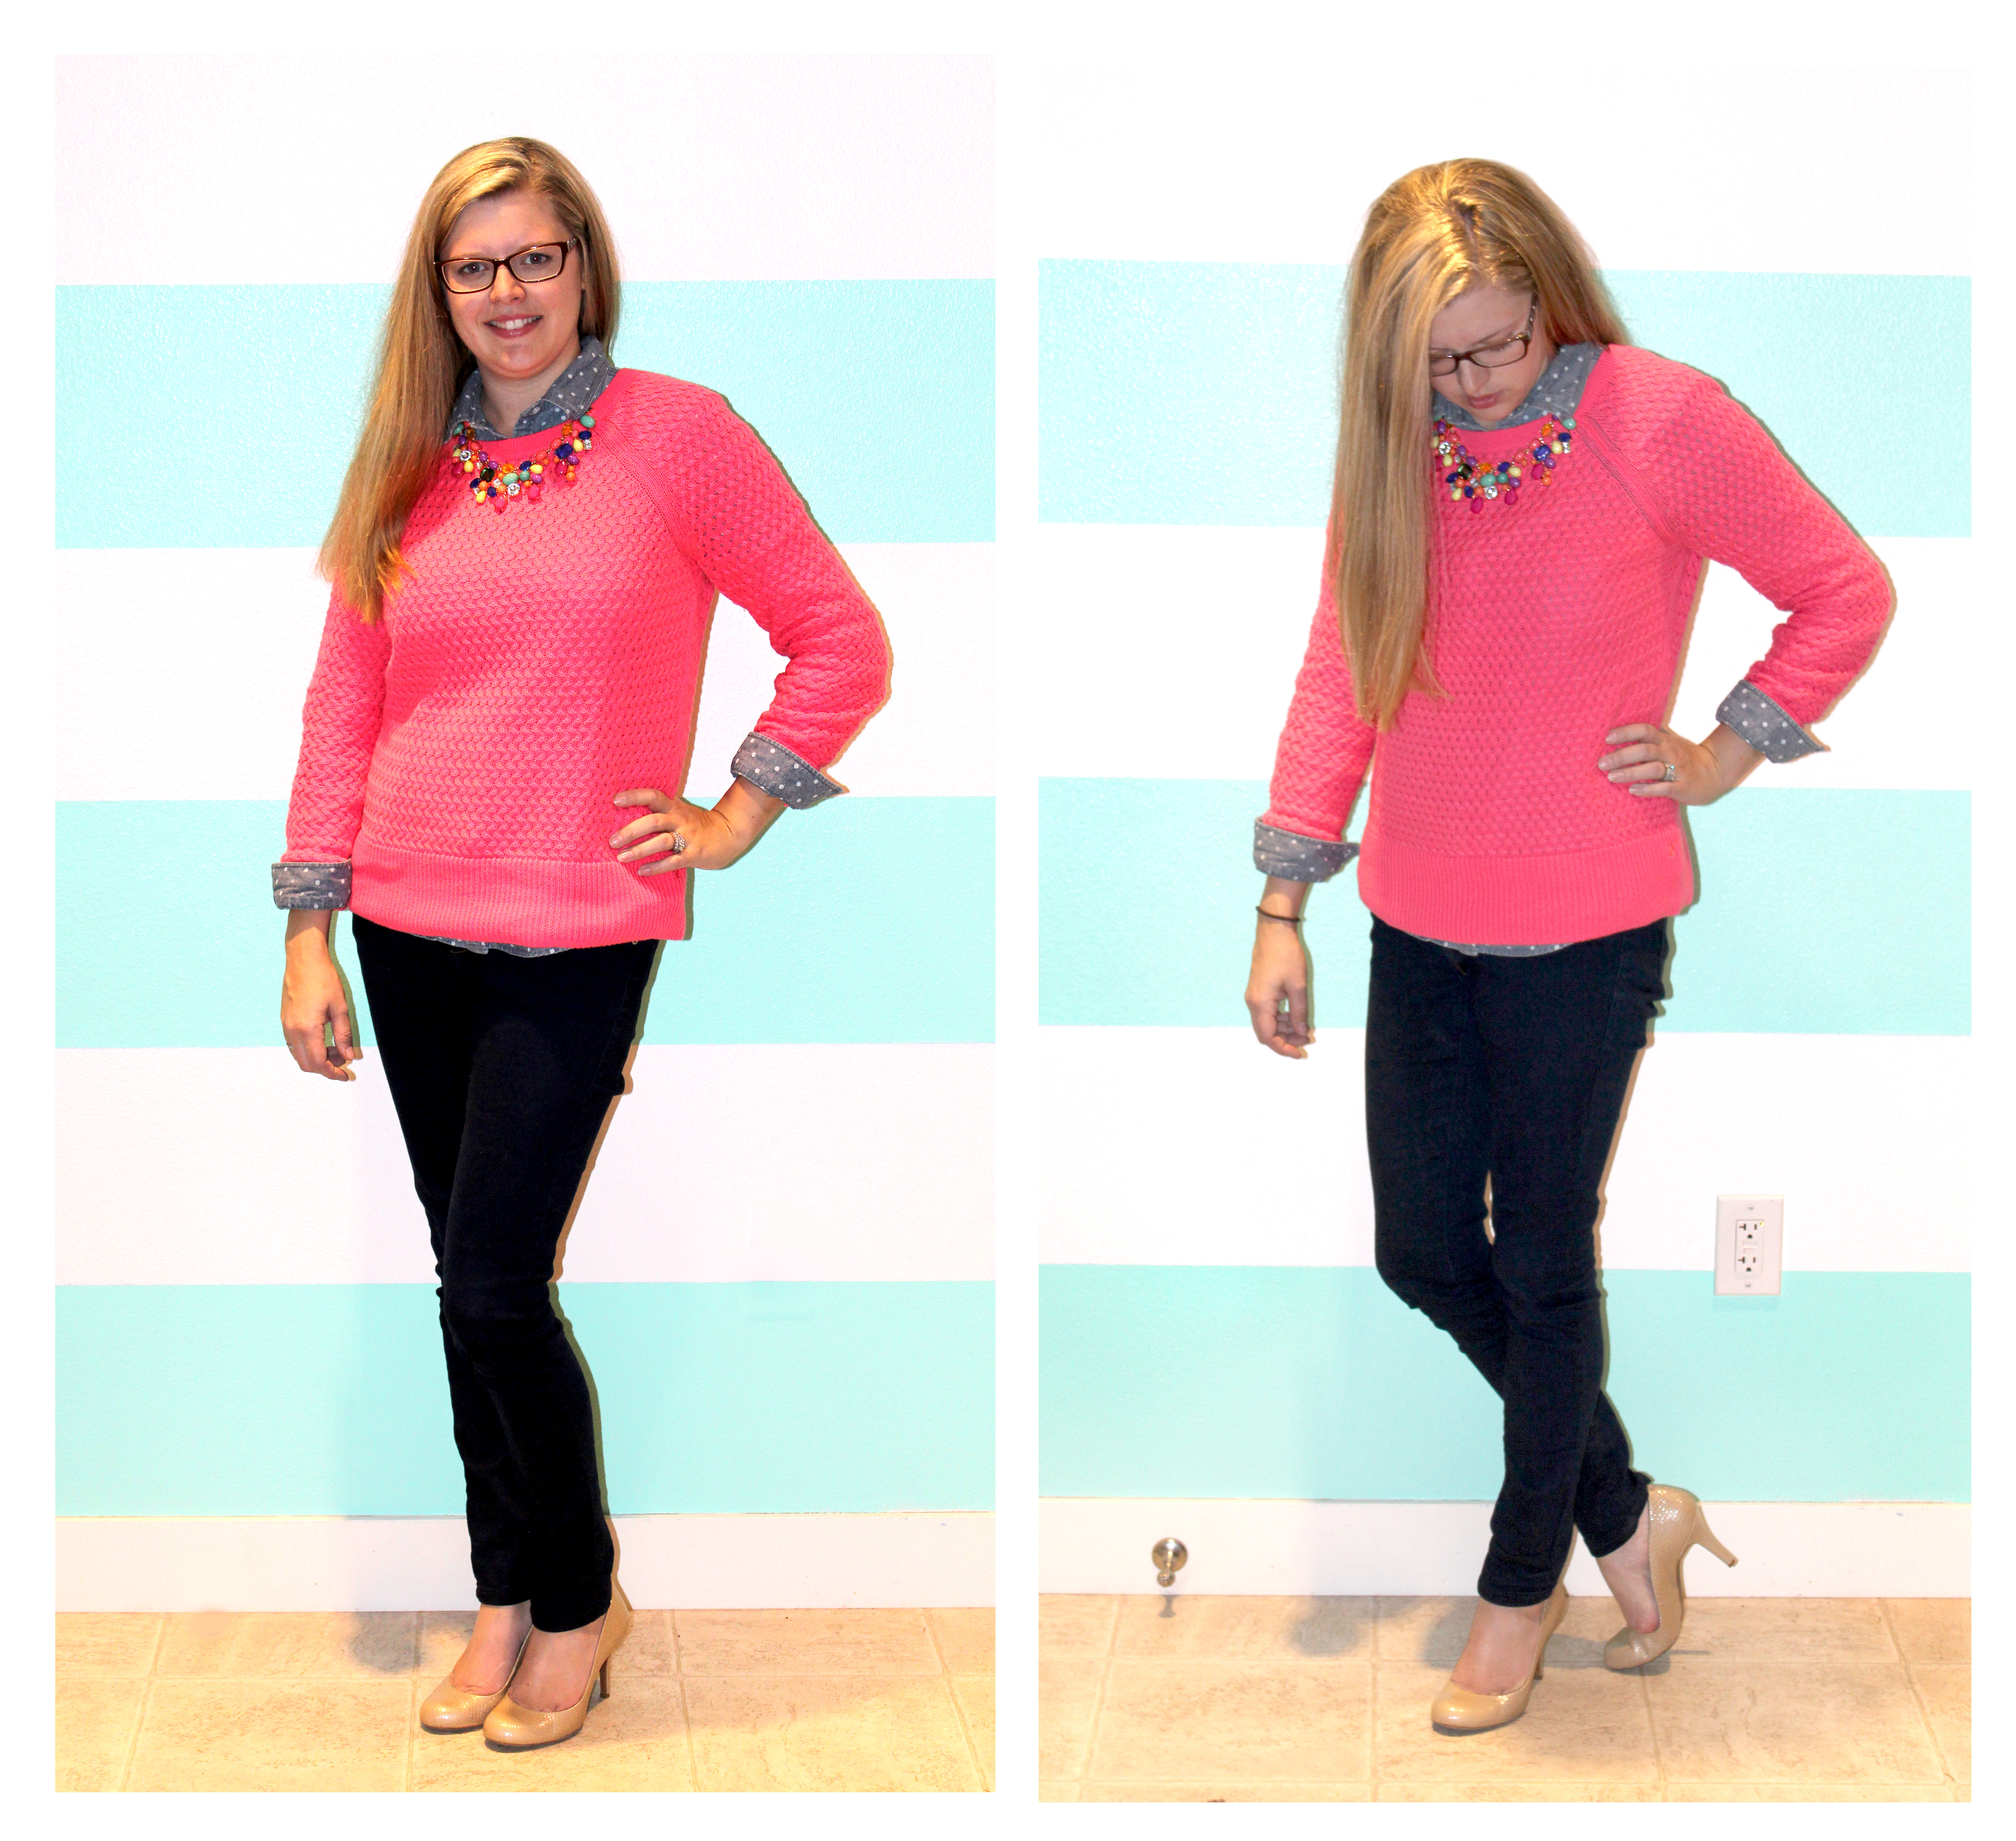 Bright Pink Sweater With Collared Shirt